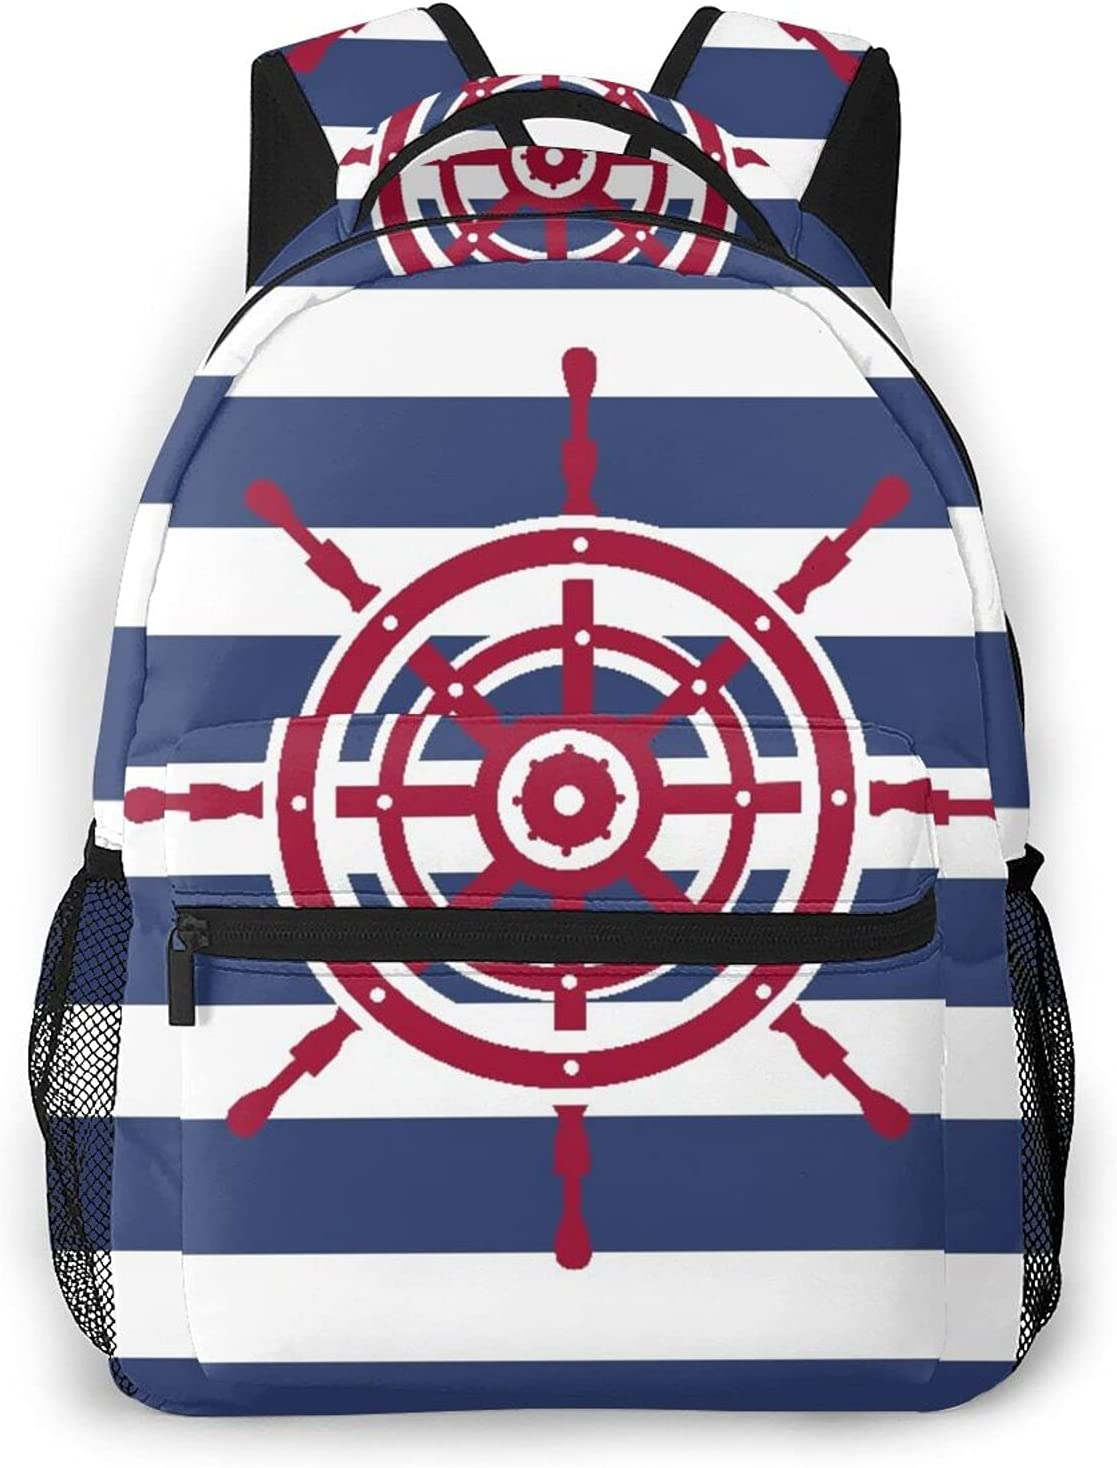 Casual Max 64% OFF Backpack,Of Ship Steering Wheel Fees free!! Stripped,Tr Icon On A